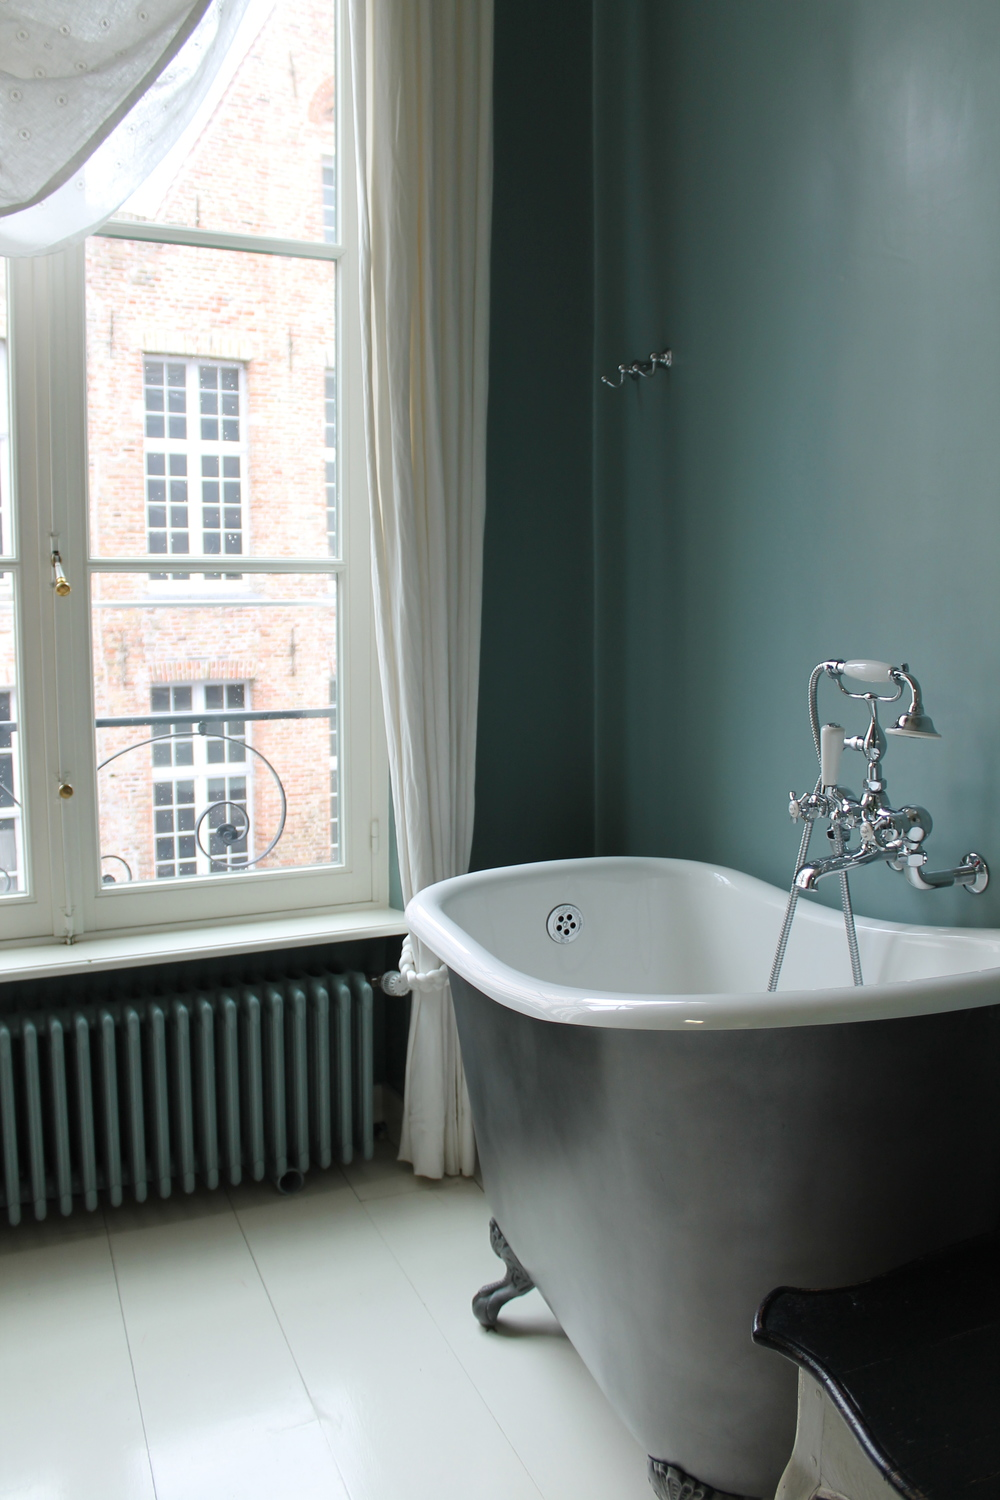 Our gorgeous claw foot tub in Belgium.